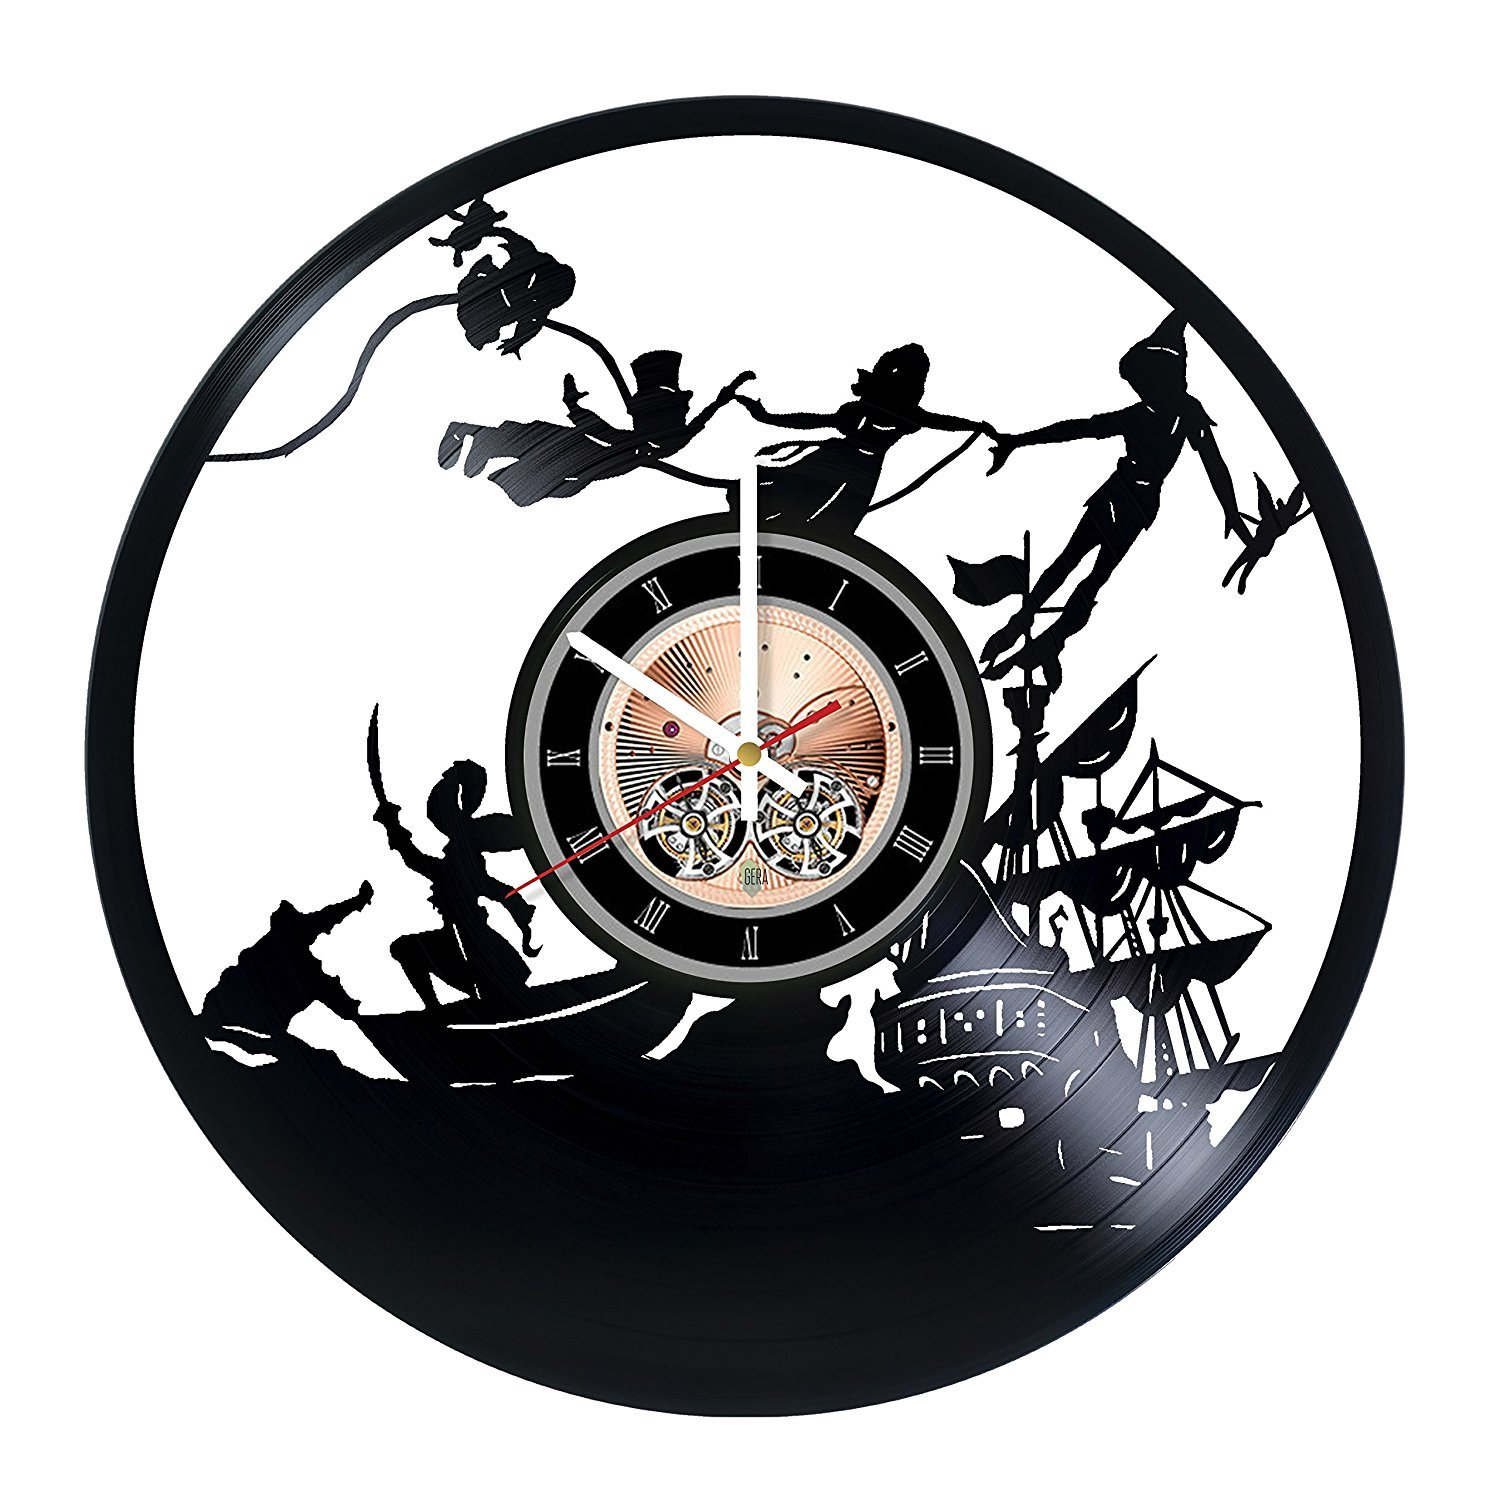 Peter Pan Vinyl Record Wall Clock - Home Room wall decor - Gift ideas for children, kids - Funny Cartoon Unique Art Design choma